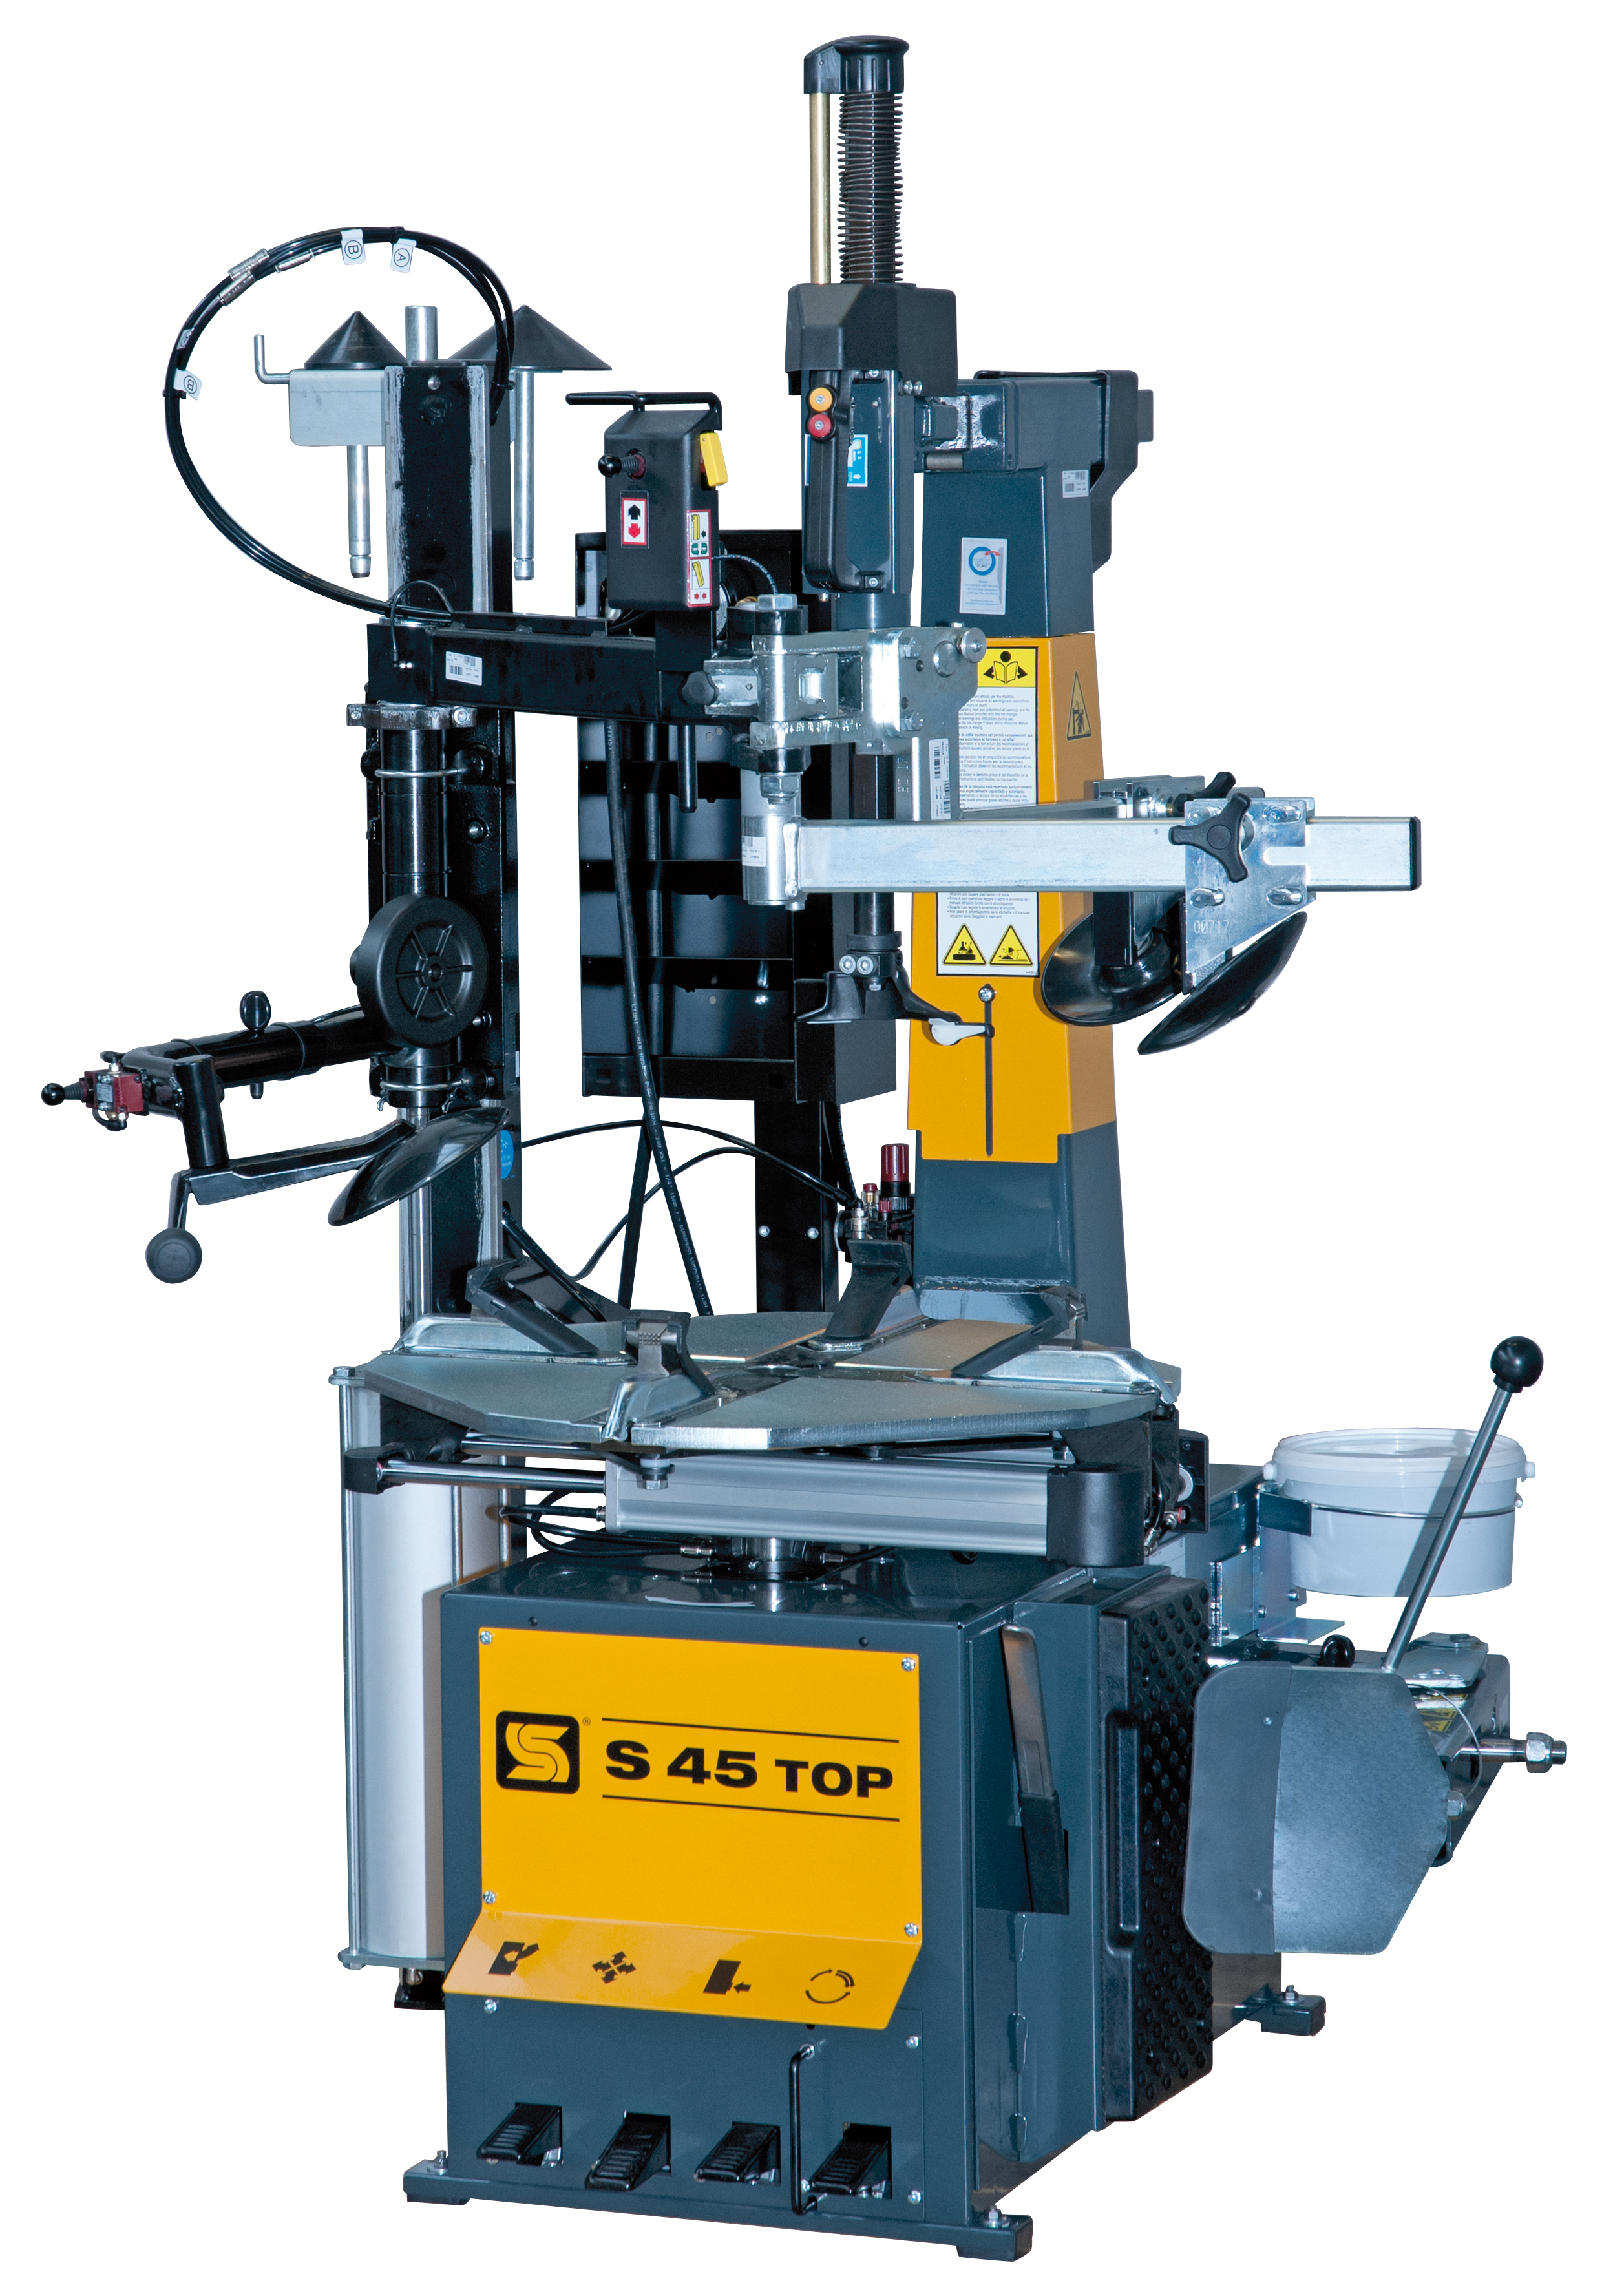 S45TOP TYRE CHANGER WITH ASSIST ARM 1 PHASE}